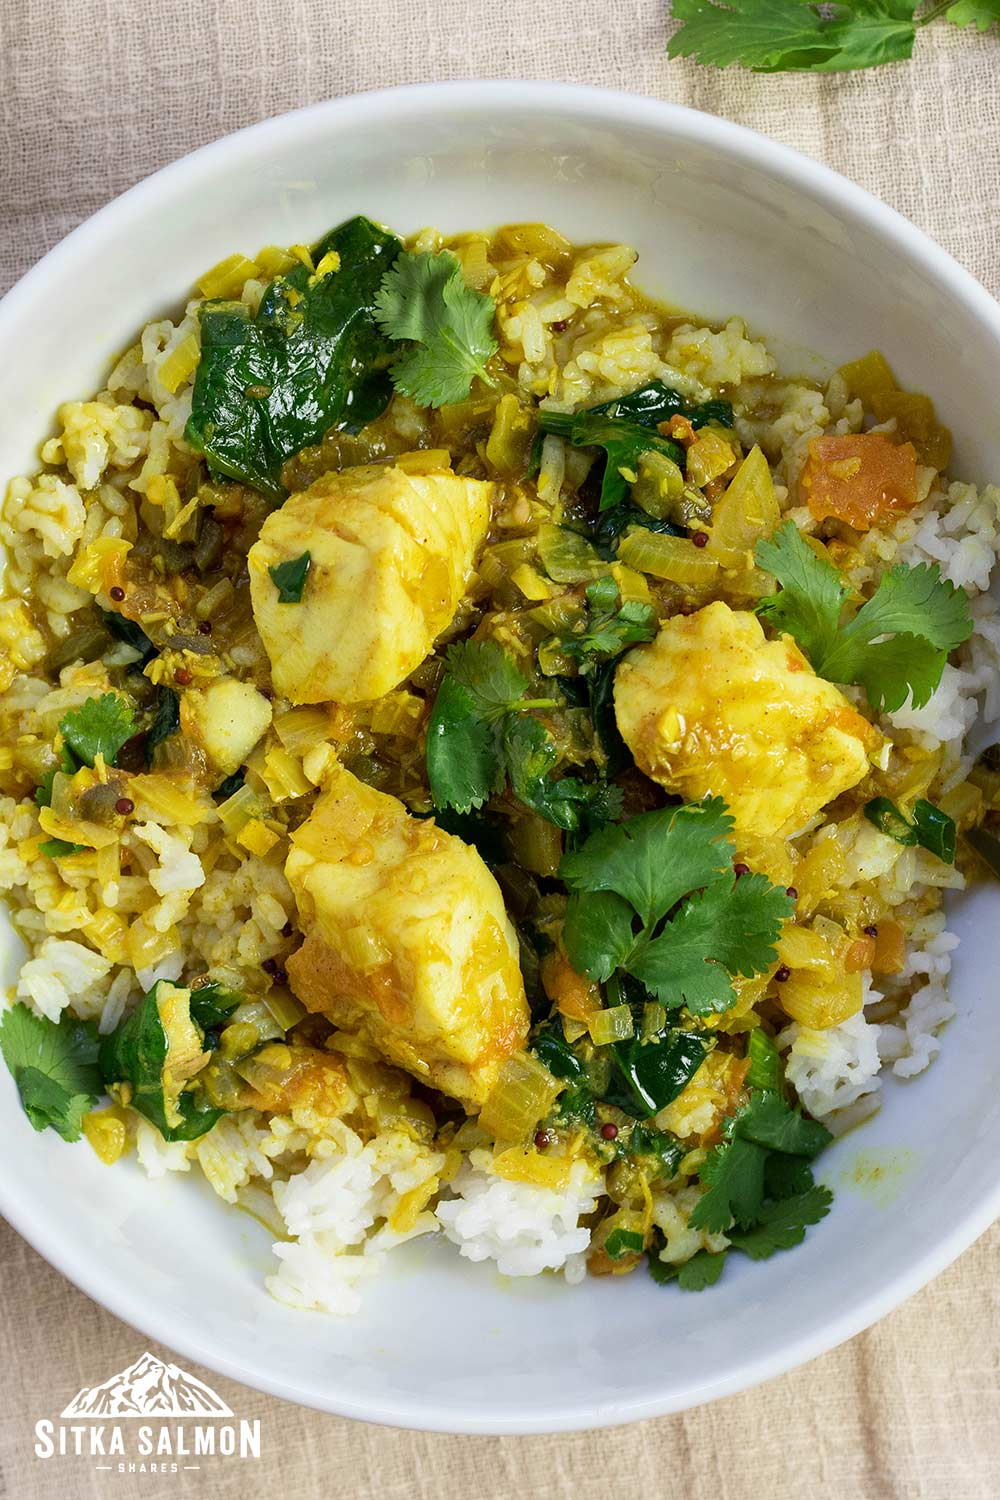 Kerala-Style Coconut Fish Curry with Tomatoes and Spinach Recipe | Sitka Salmon Shares